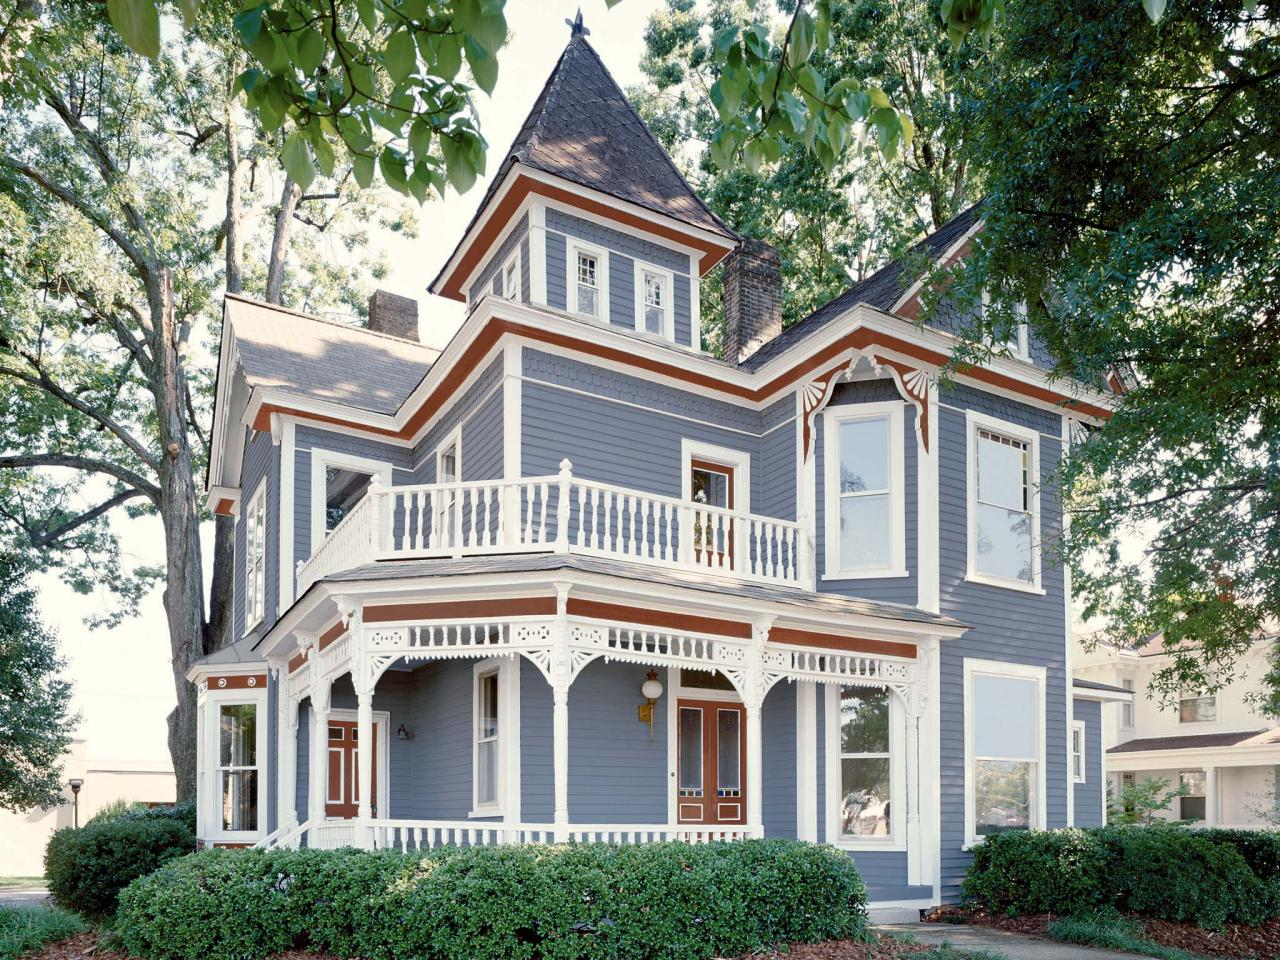 How to select exterior paint colors for a home diy Best color to paint your house